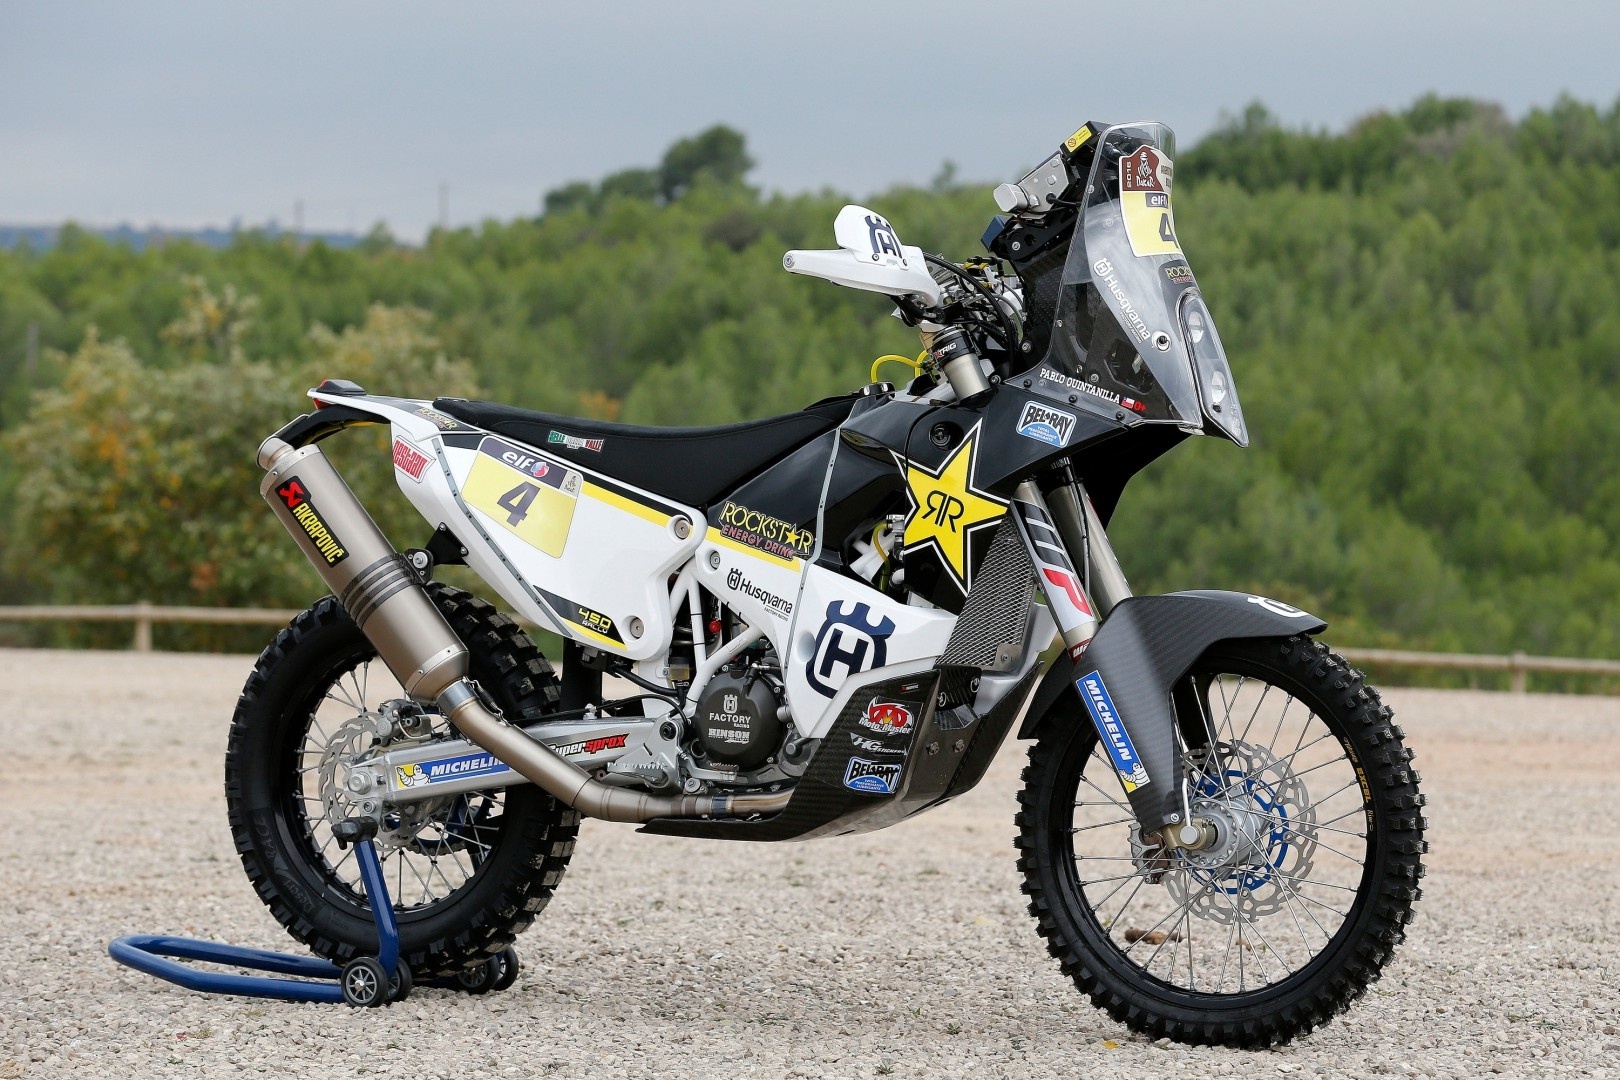 Husqvarna introduces the dakar team and the bikes autoevolution